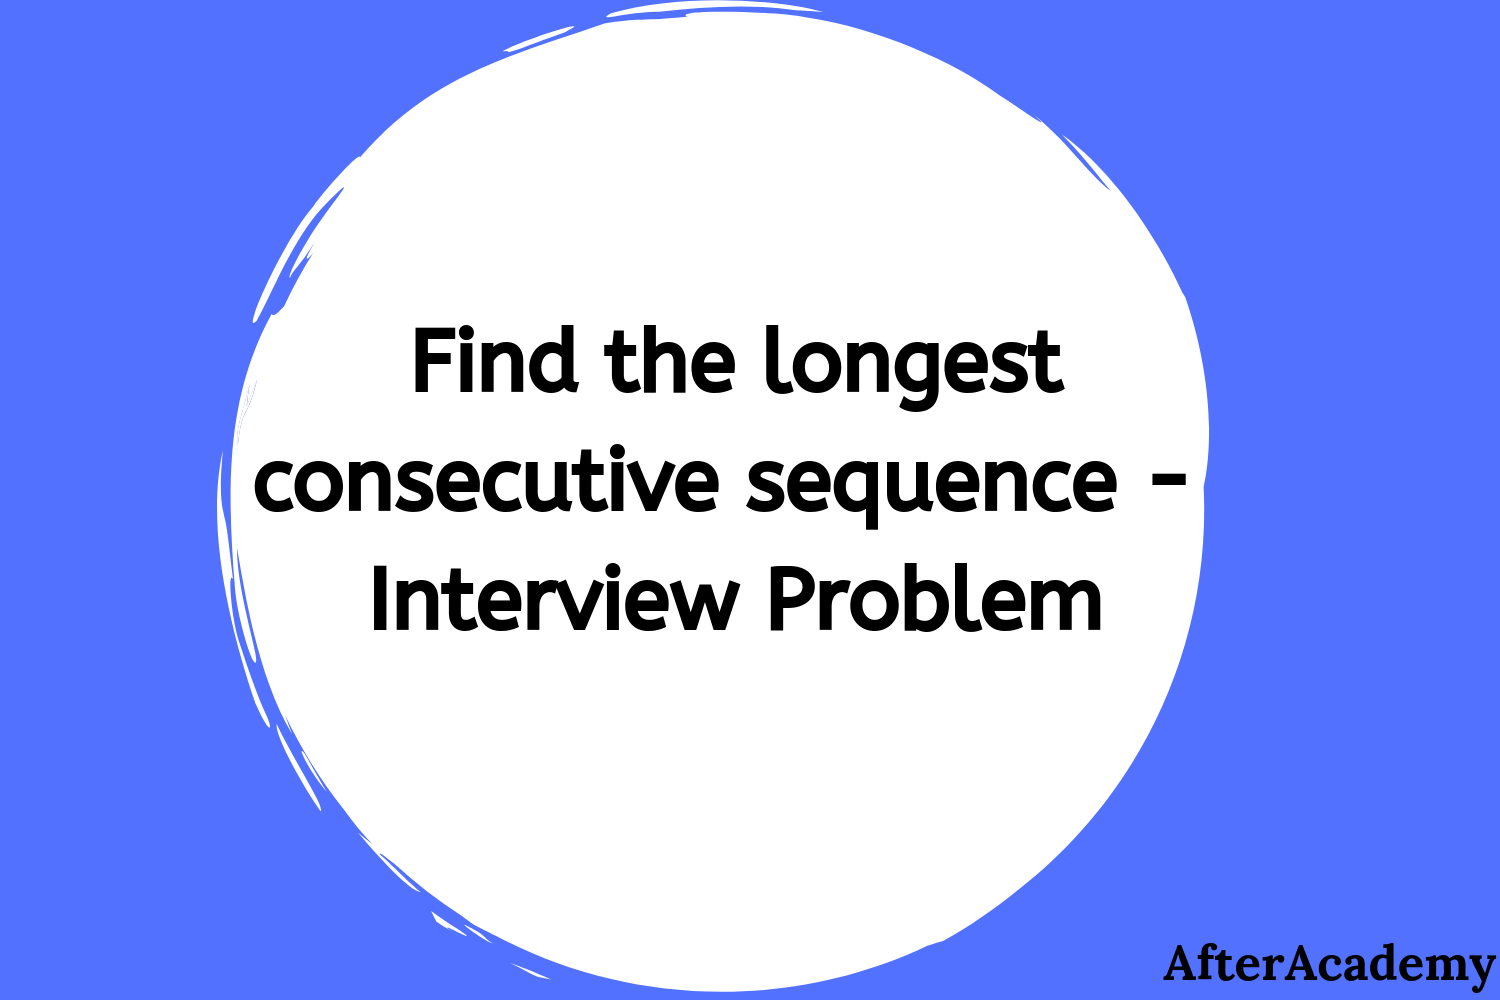 Longest Consecutive Sequence - Interview Problem